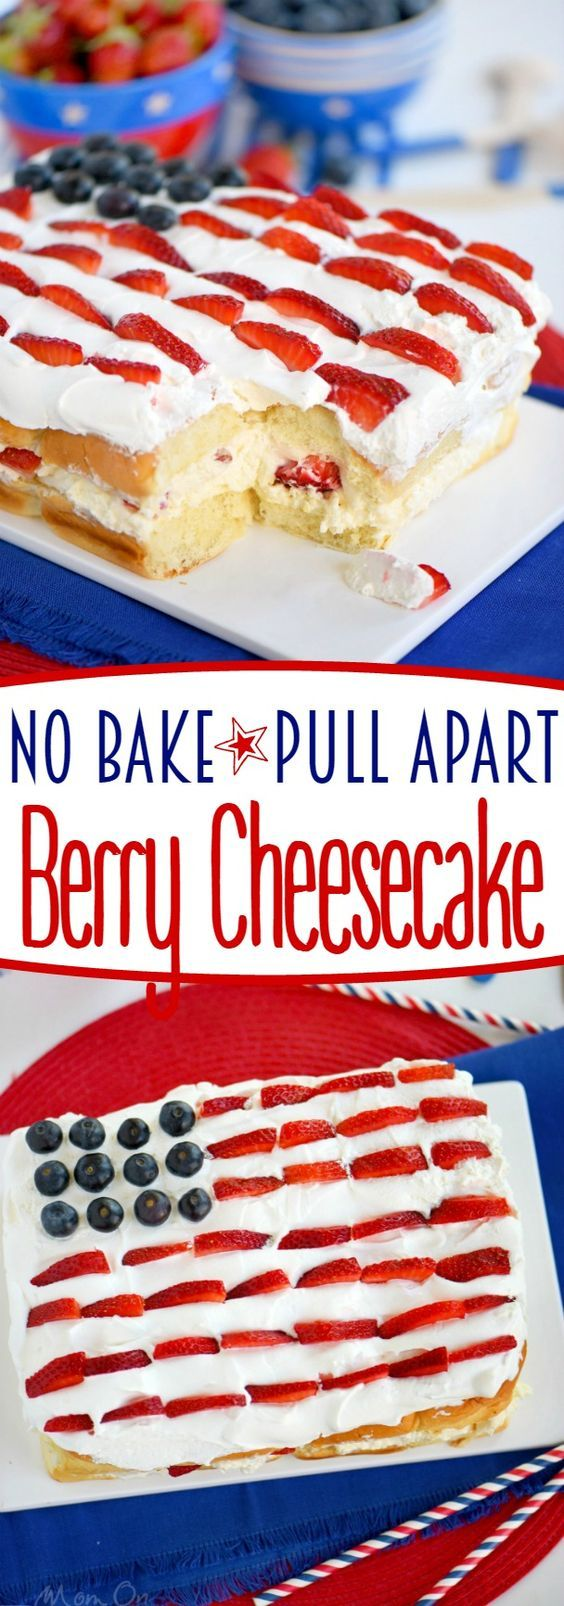 This delightful No Bake Pull Apart Berry Cheesecake takes about 10 minutes to make - start to finish! A delicious and easy dessert recipe that's perfect for the 4th of July and all your BBQ and potluck needs!